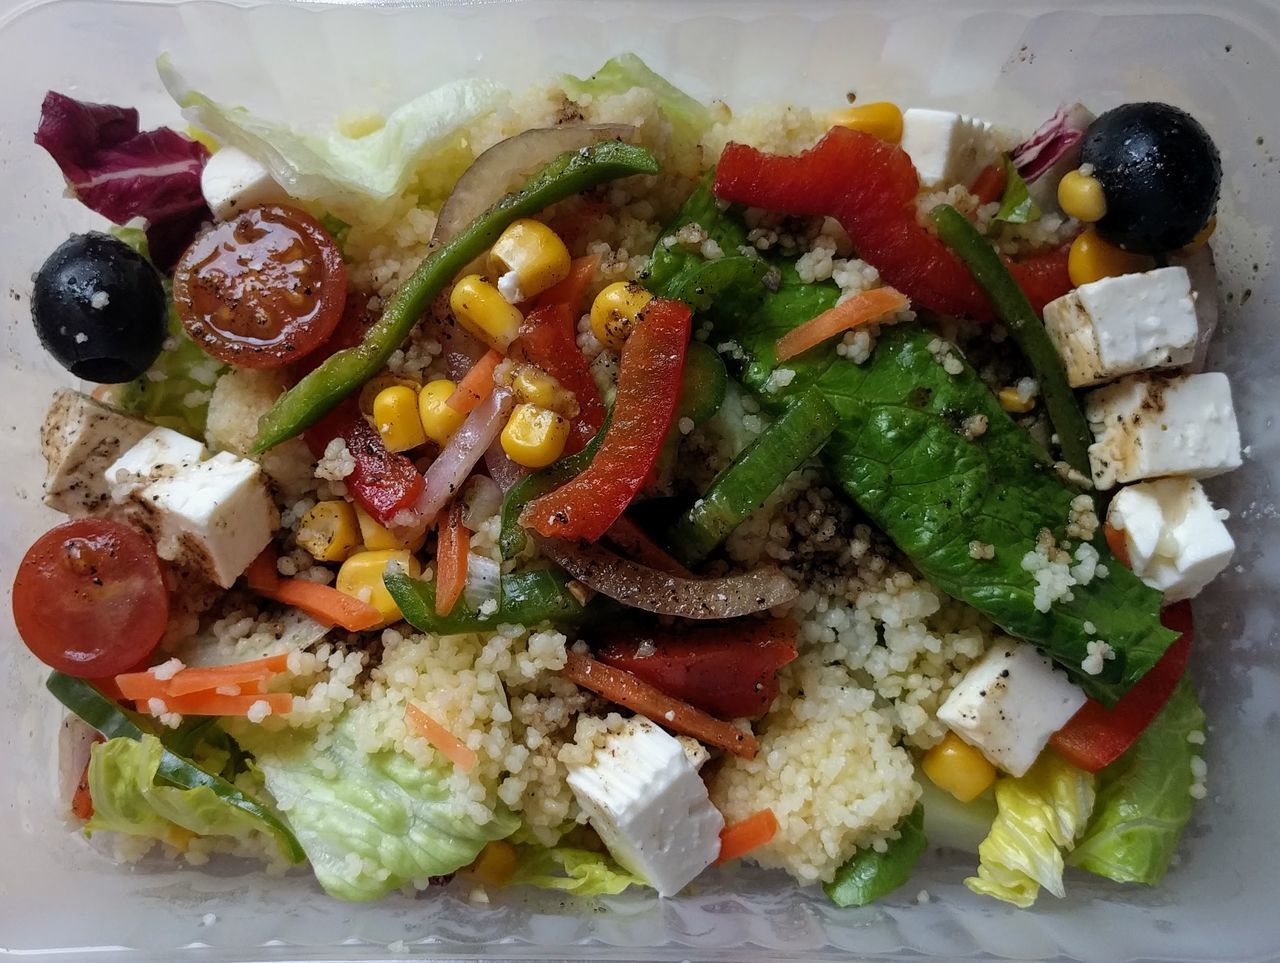 Healthy Eating Food Food And Drink Freshness Vegetable No People Feta Cheese Indoors  Salad Vegetarian Food Greek Food Ready-to-eat Healthy Lifestyle Dieting Close-up Day Ensalada Cuscus Queso Feta Verduras Take Away